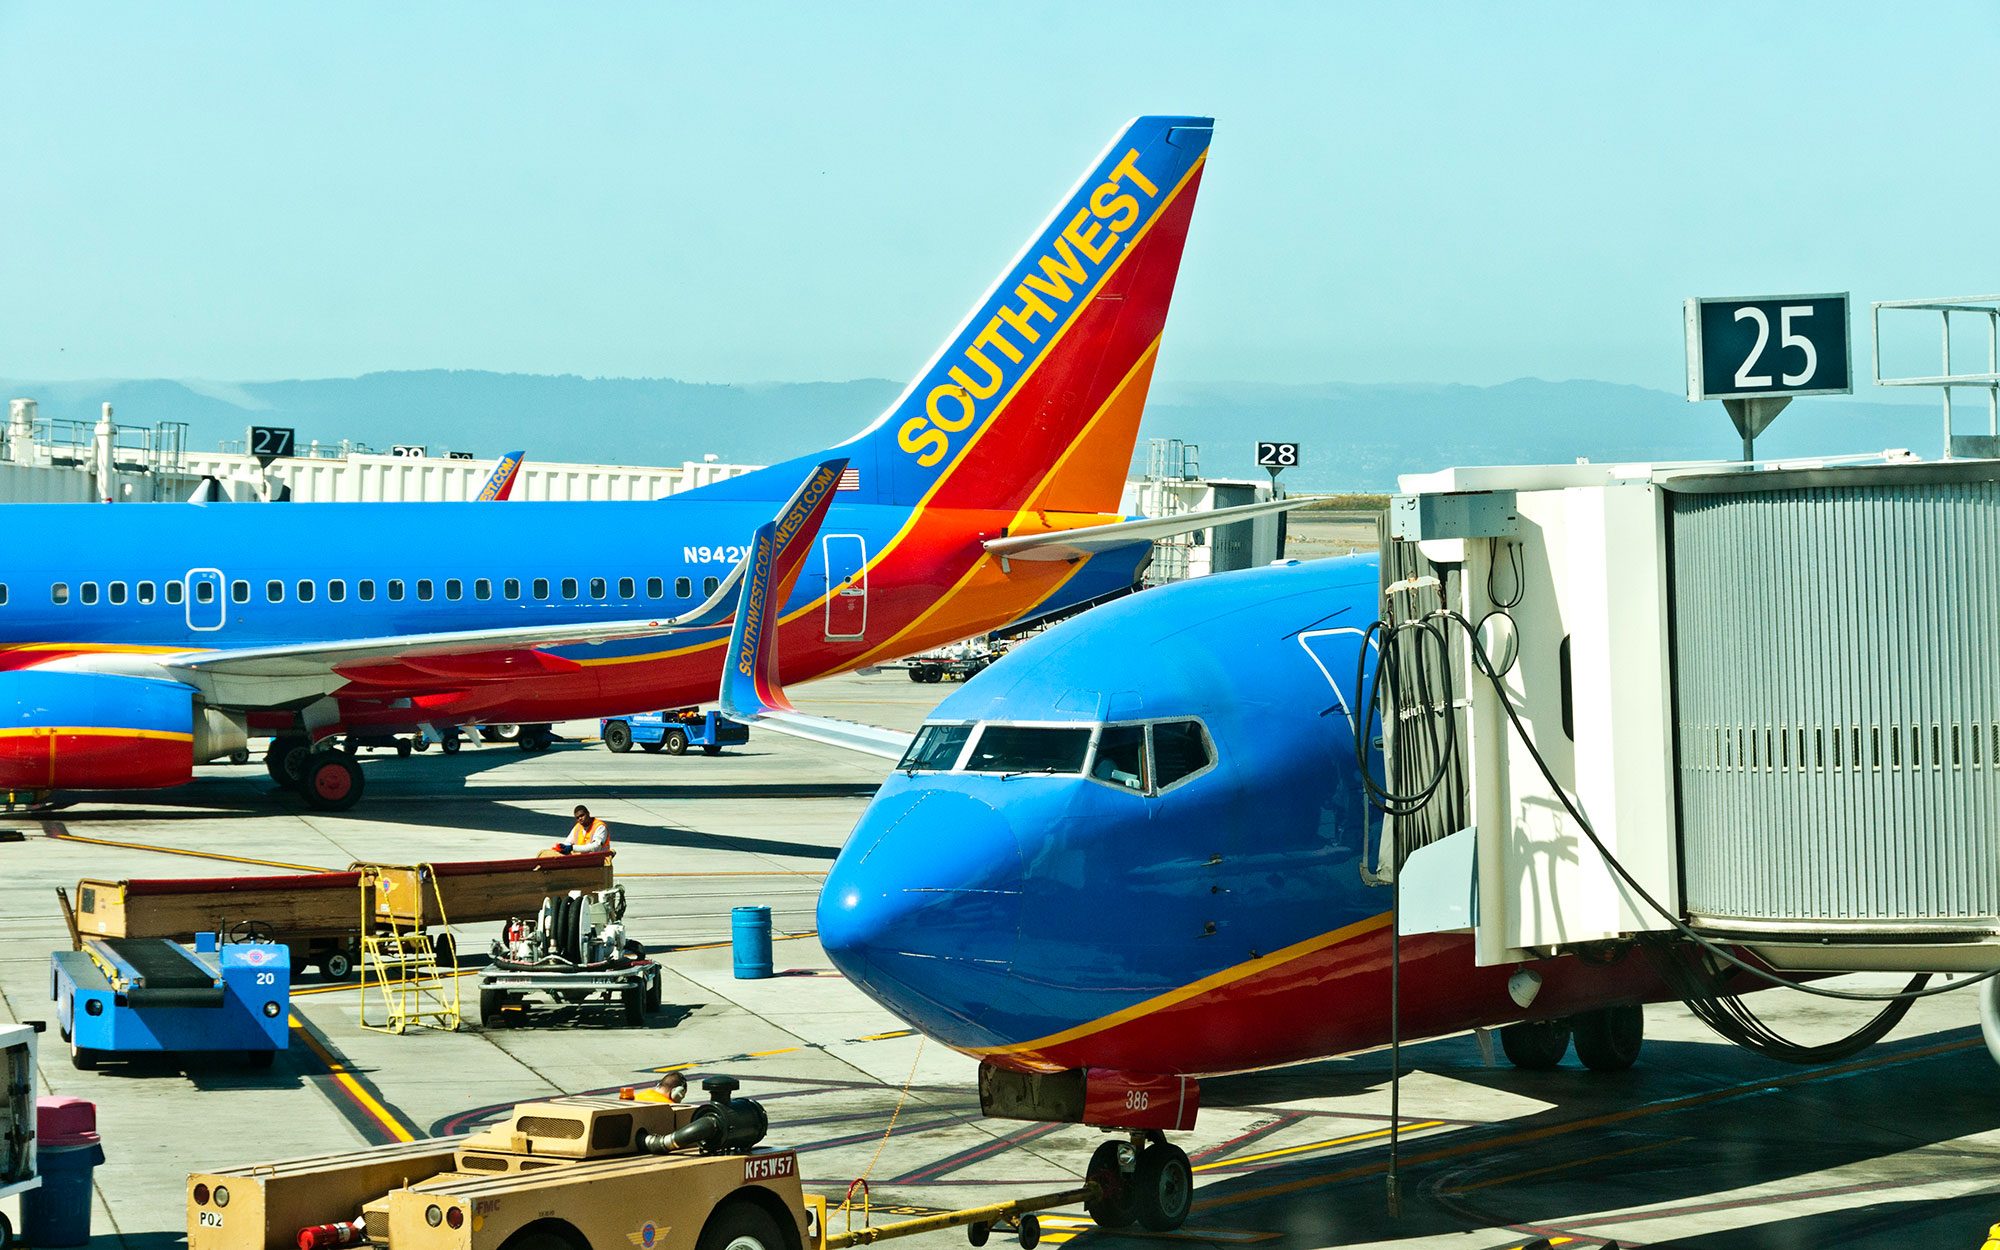 Get Free Flights with Southwest Airline's Companion Pass